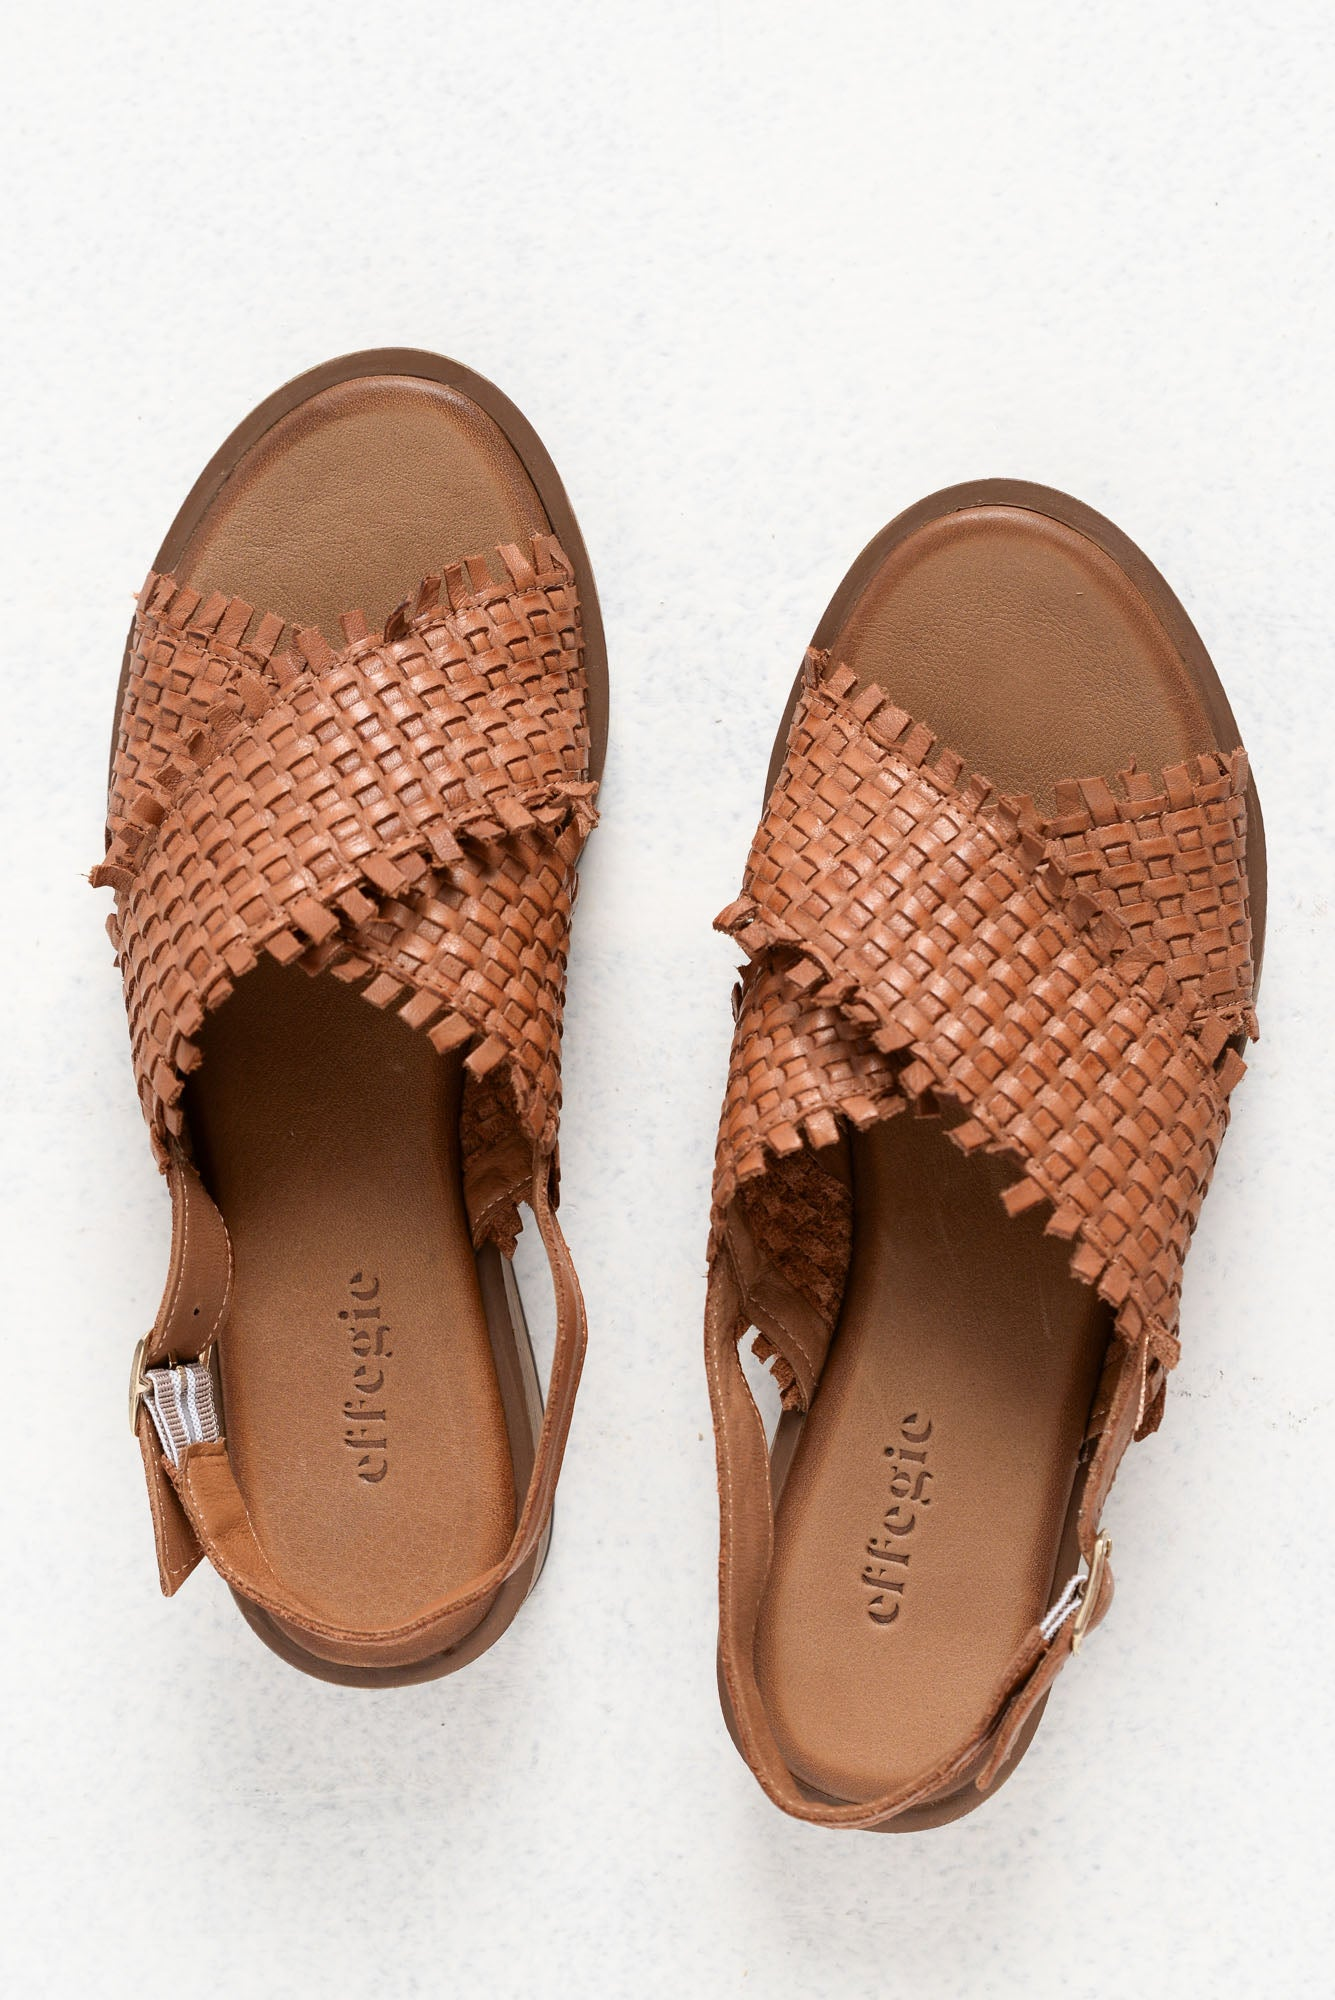 Weaving Brandy Leather Sandal